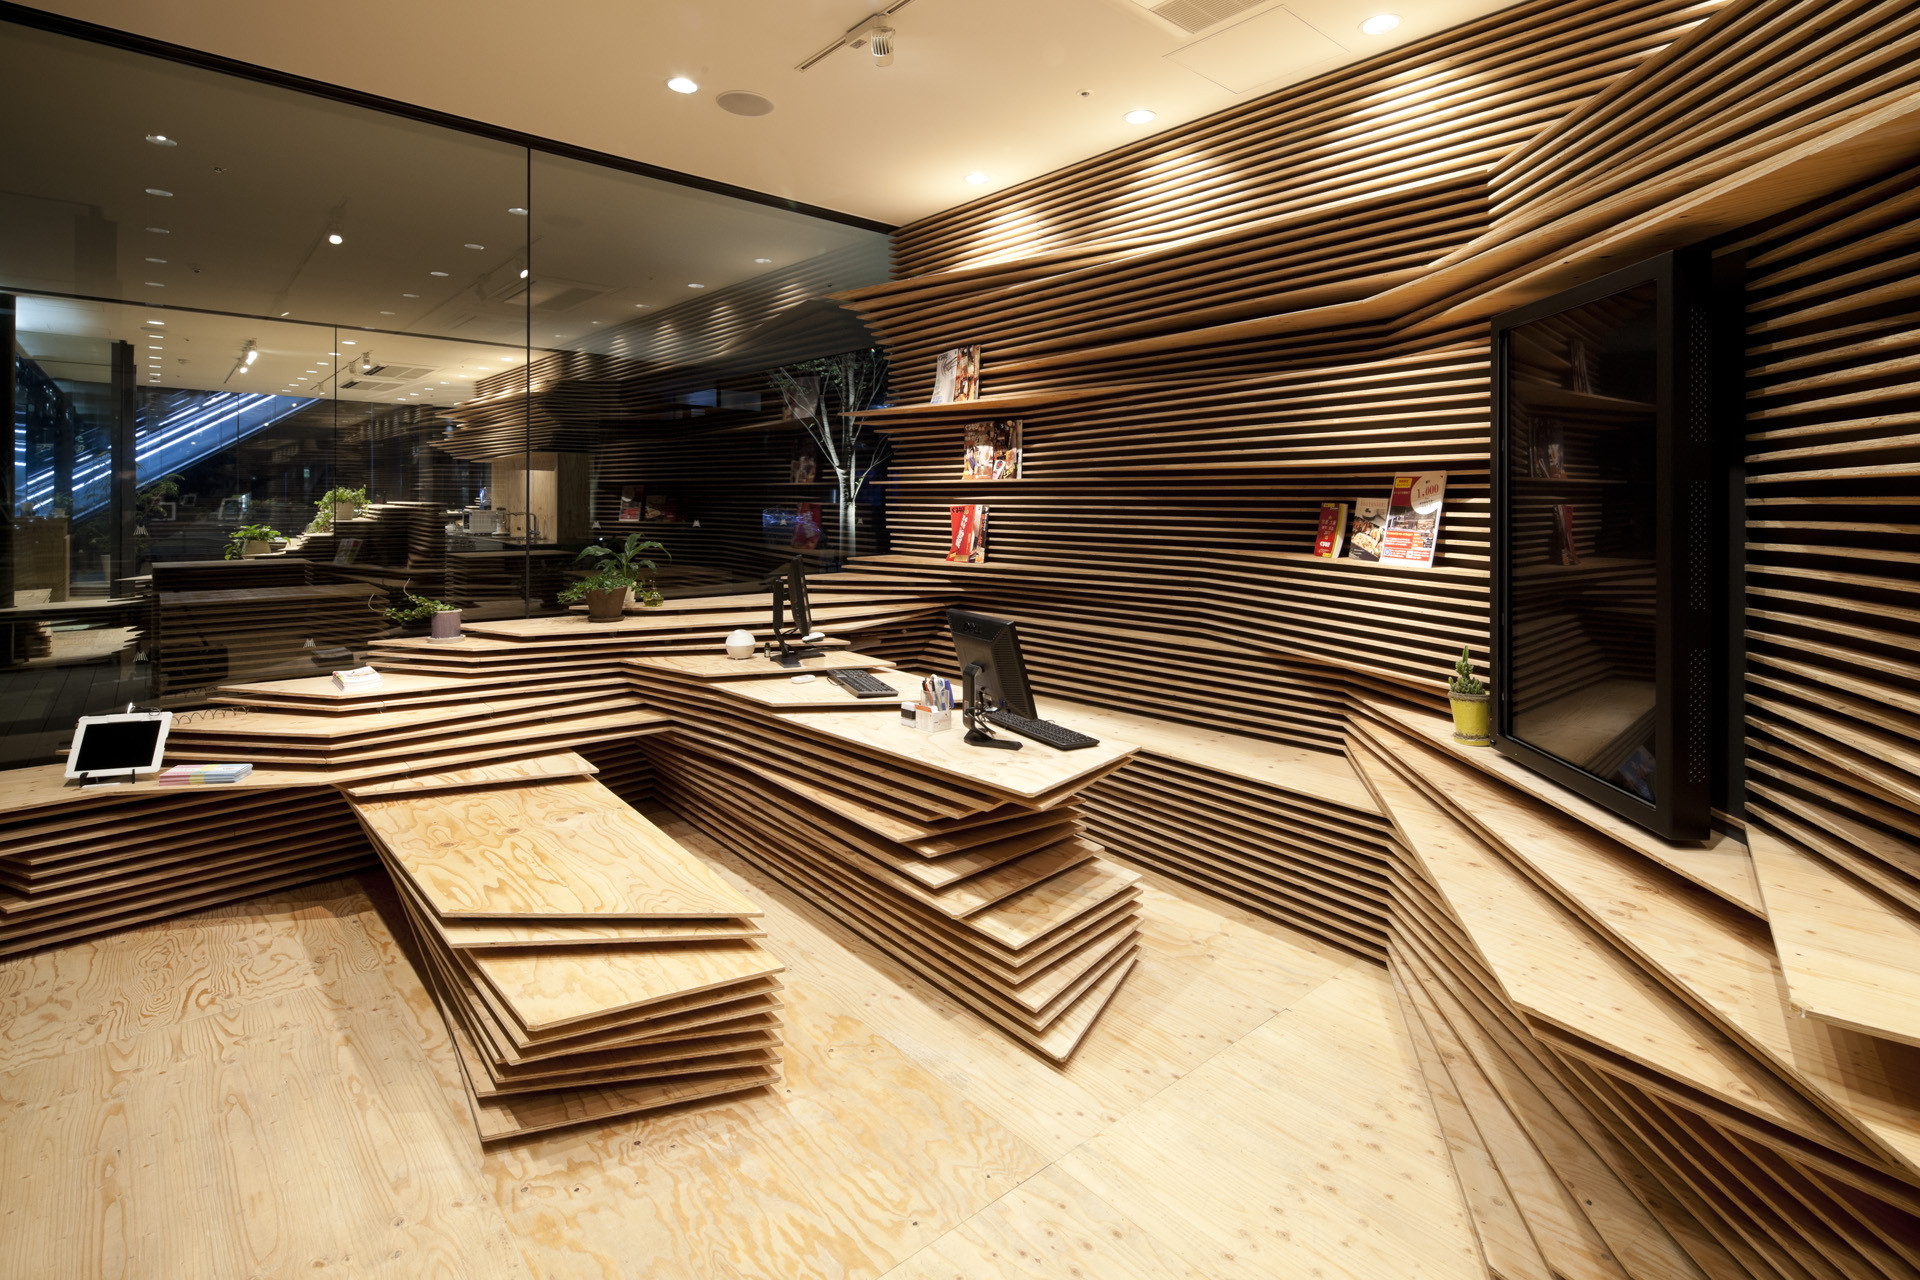 Shun shoku lounge by guranavi kengo kuma associates for Woodworks design office 8